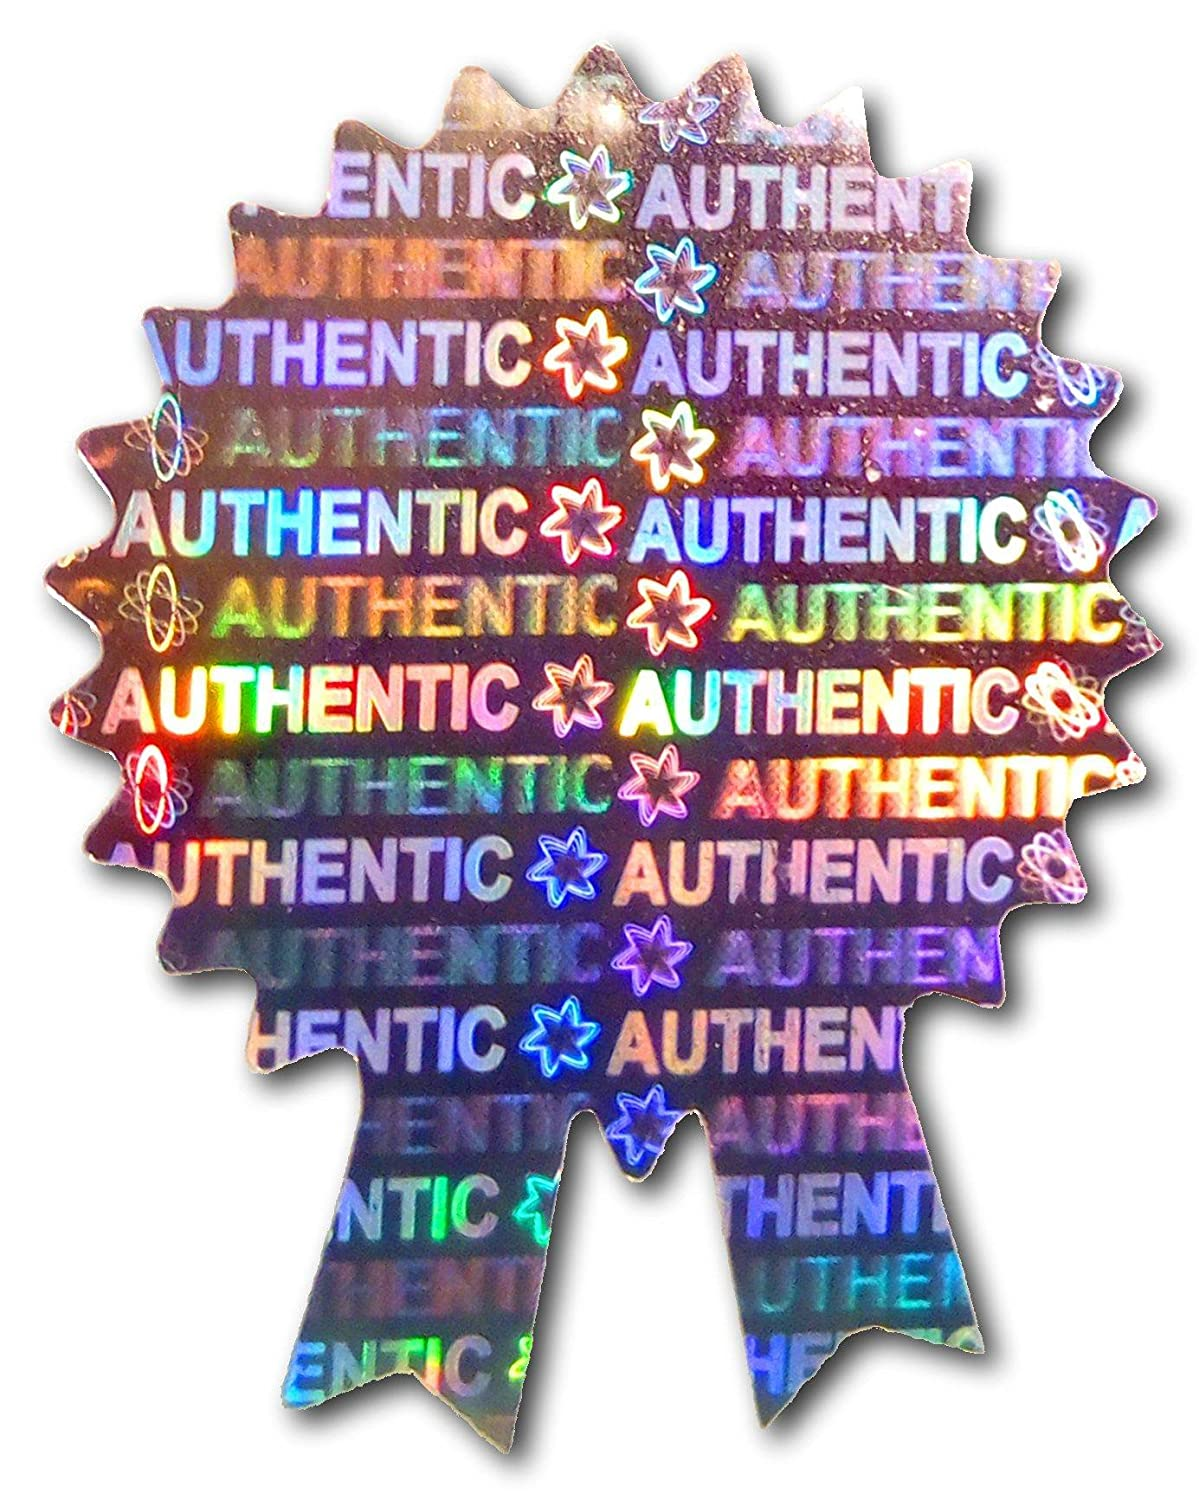 1.4 x 1.1 Secure Authentic Silver Warranty Labels AUTHENTIC Labels VOID 35mm x 28mm Genuine Valid Tamper-Evident Original Security 500x ROSETTE Certificate Hologram Stickers